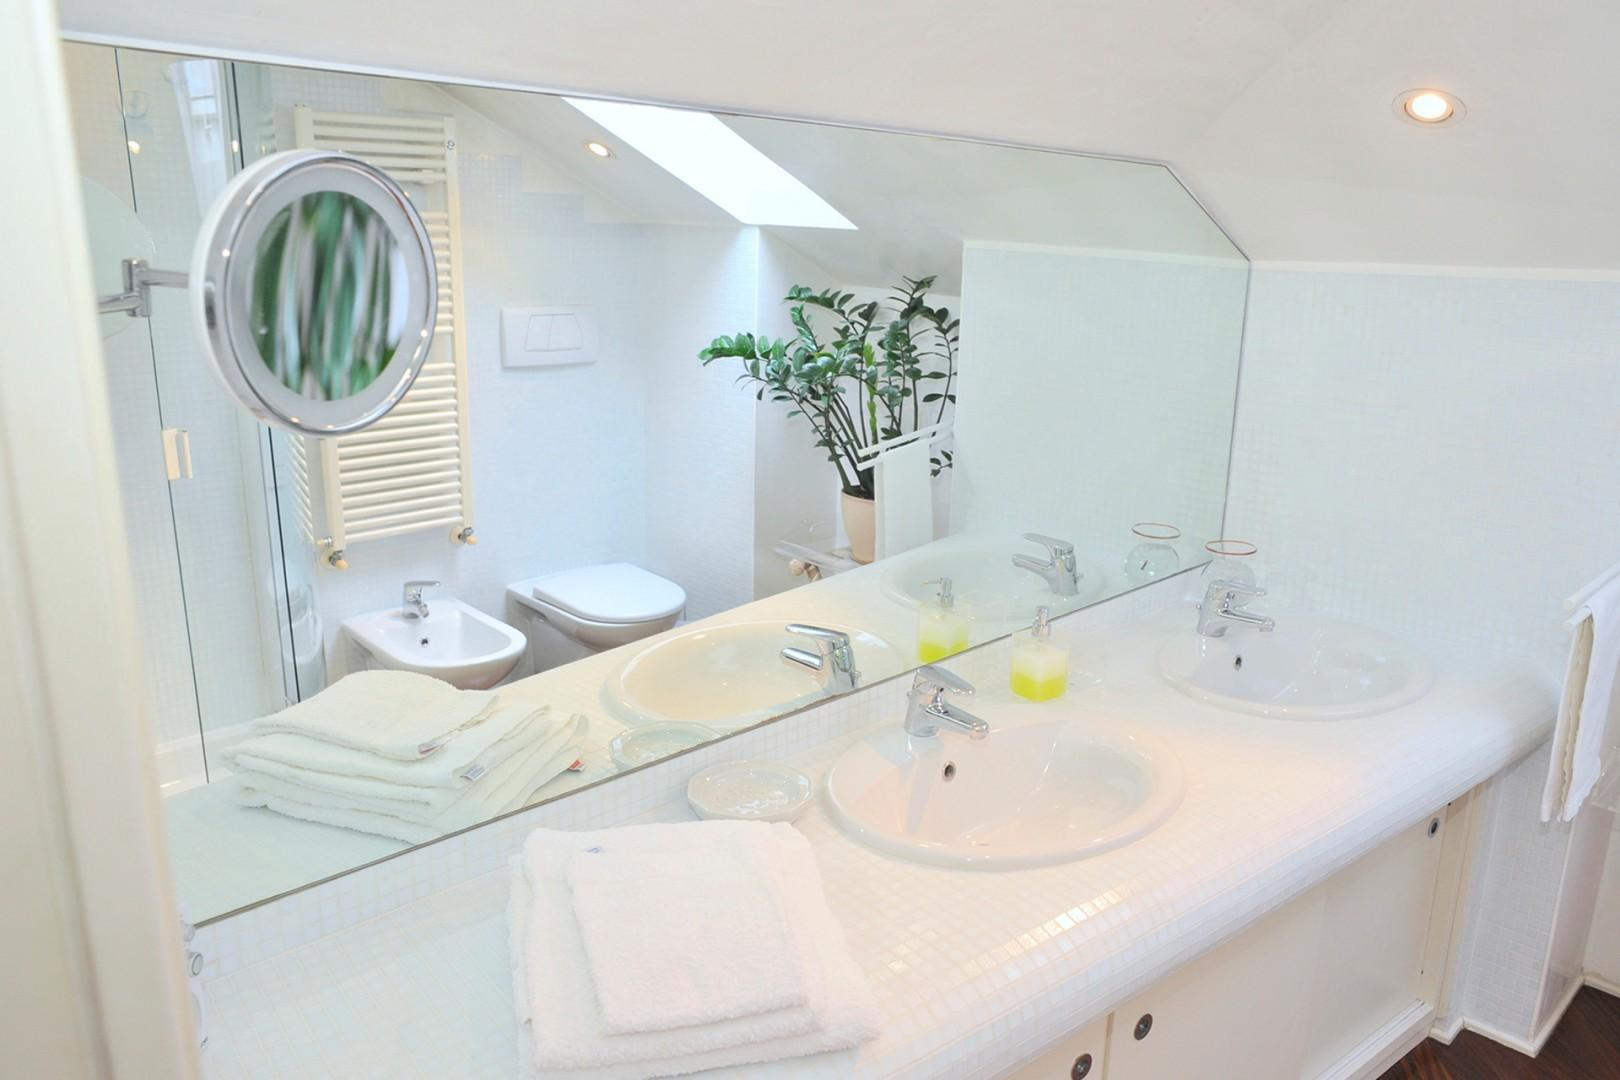 Double sink with plenty of counter space.